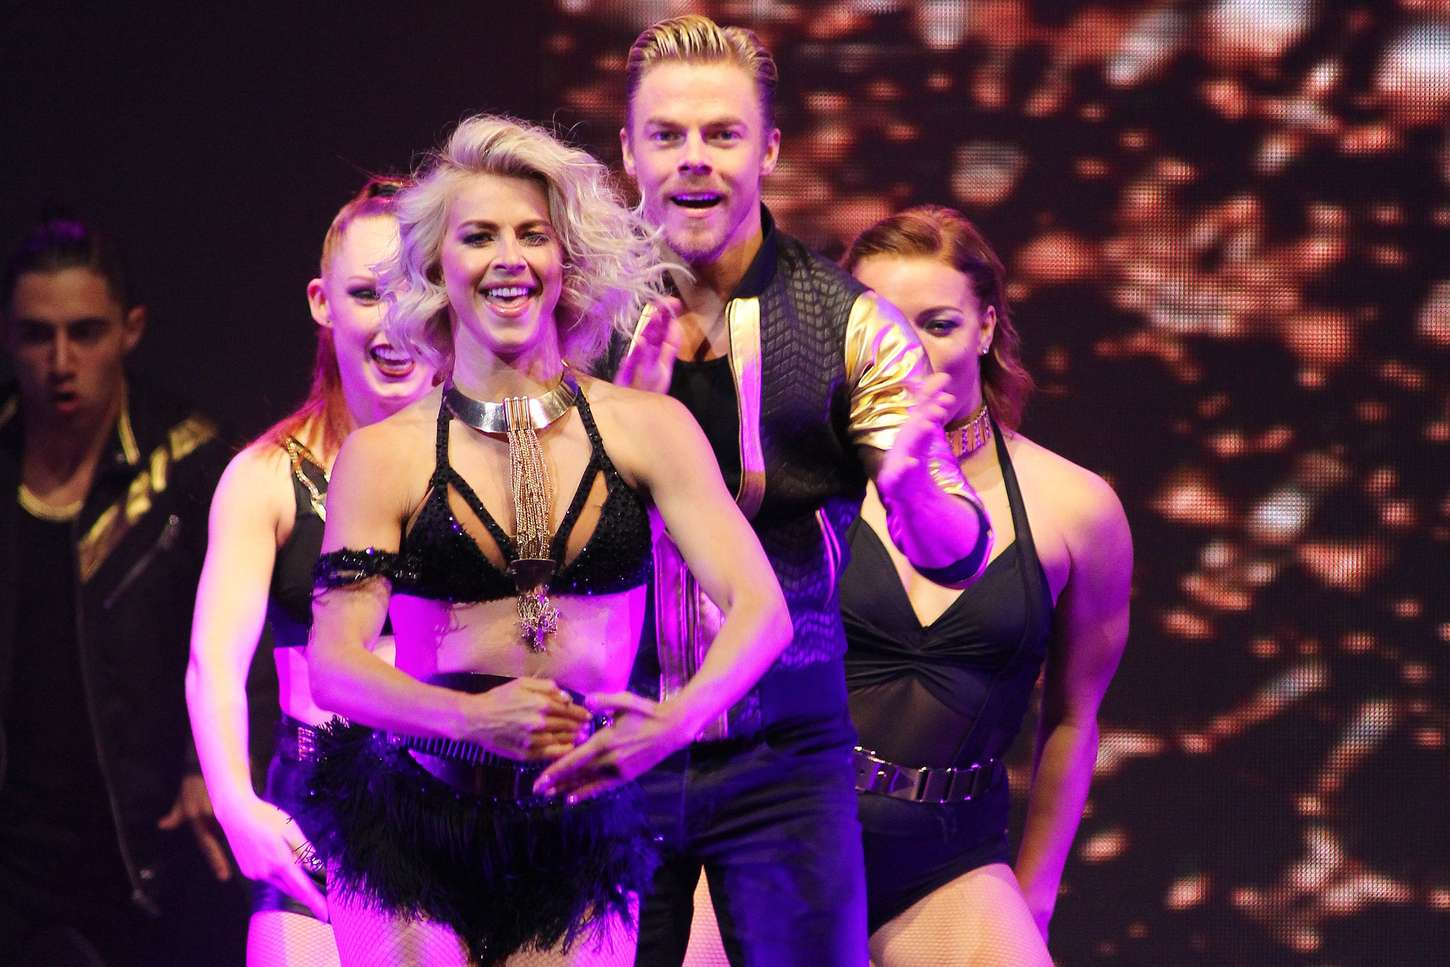 Julianne Hough 2015 : Julianne Hough: Performing at MOVE Live on Tour -18